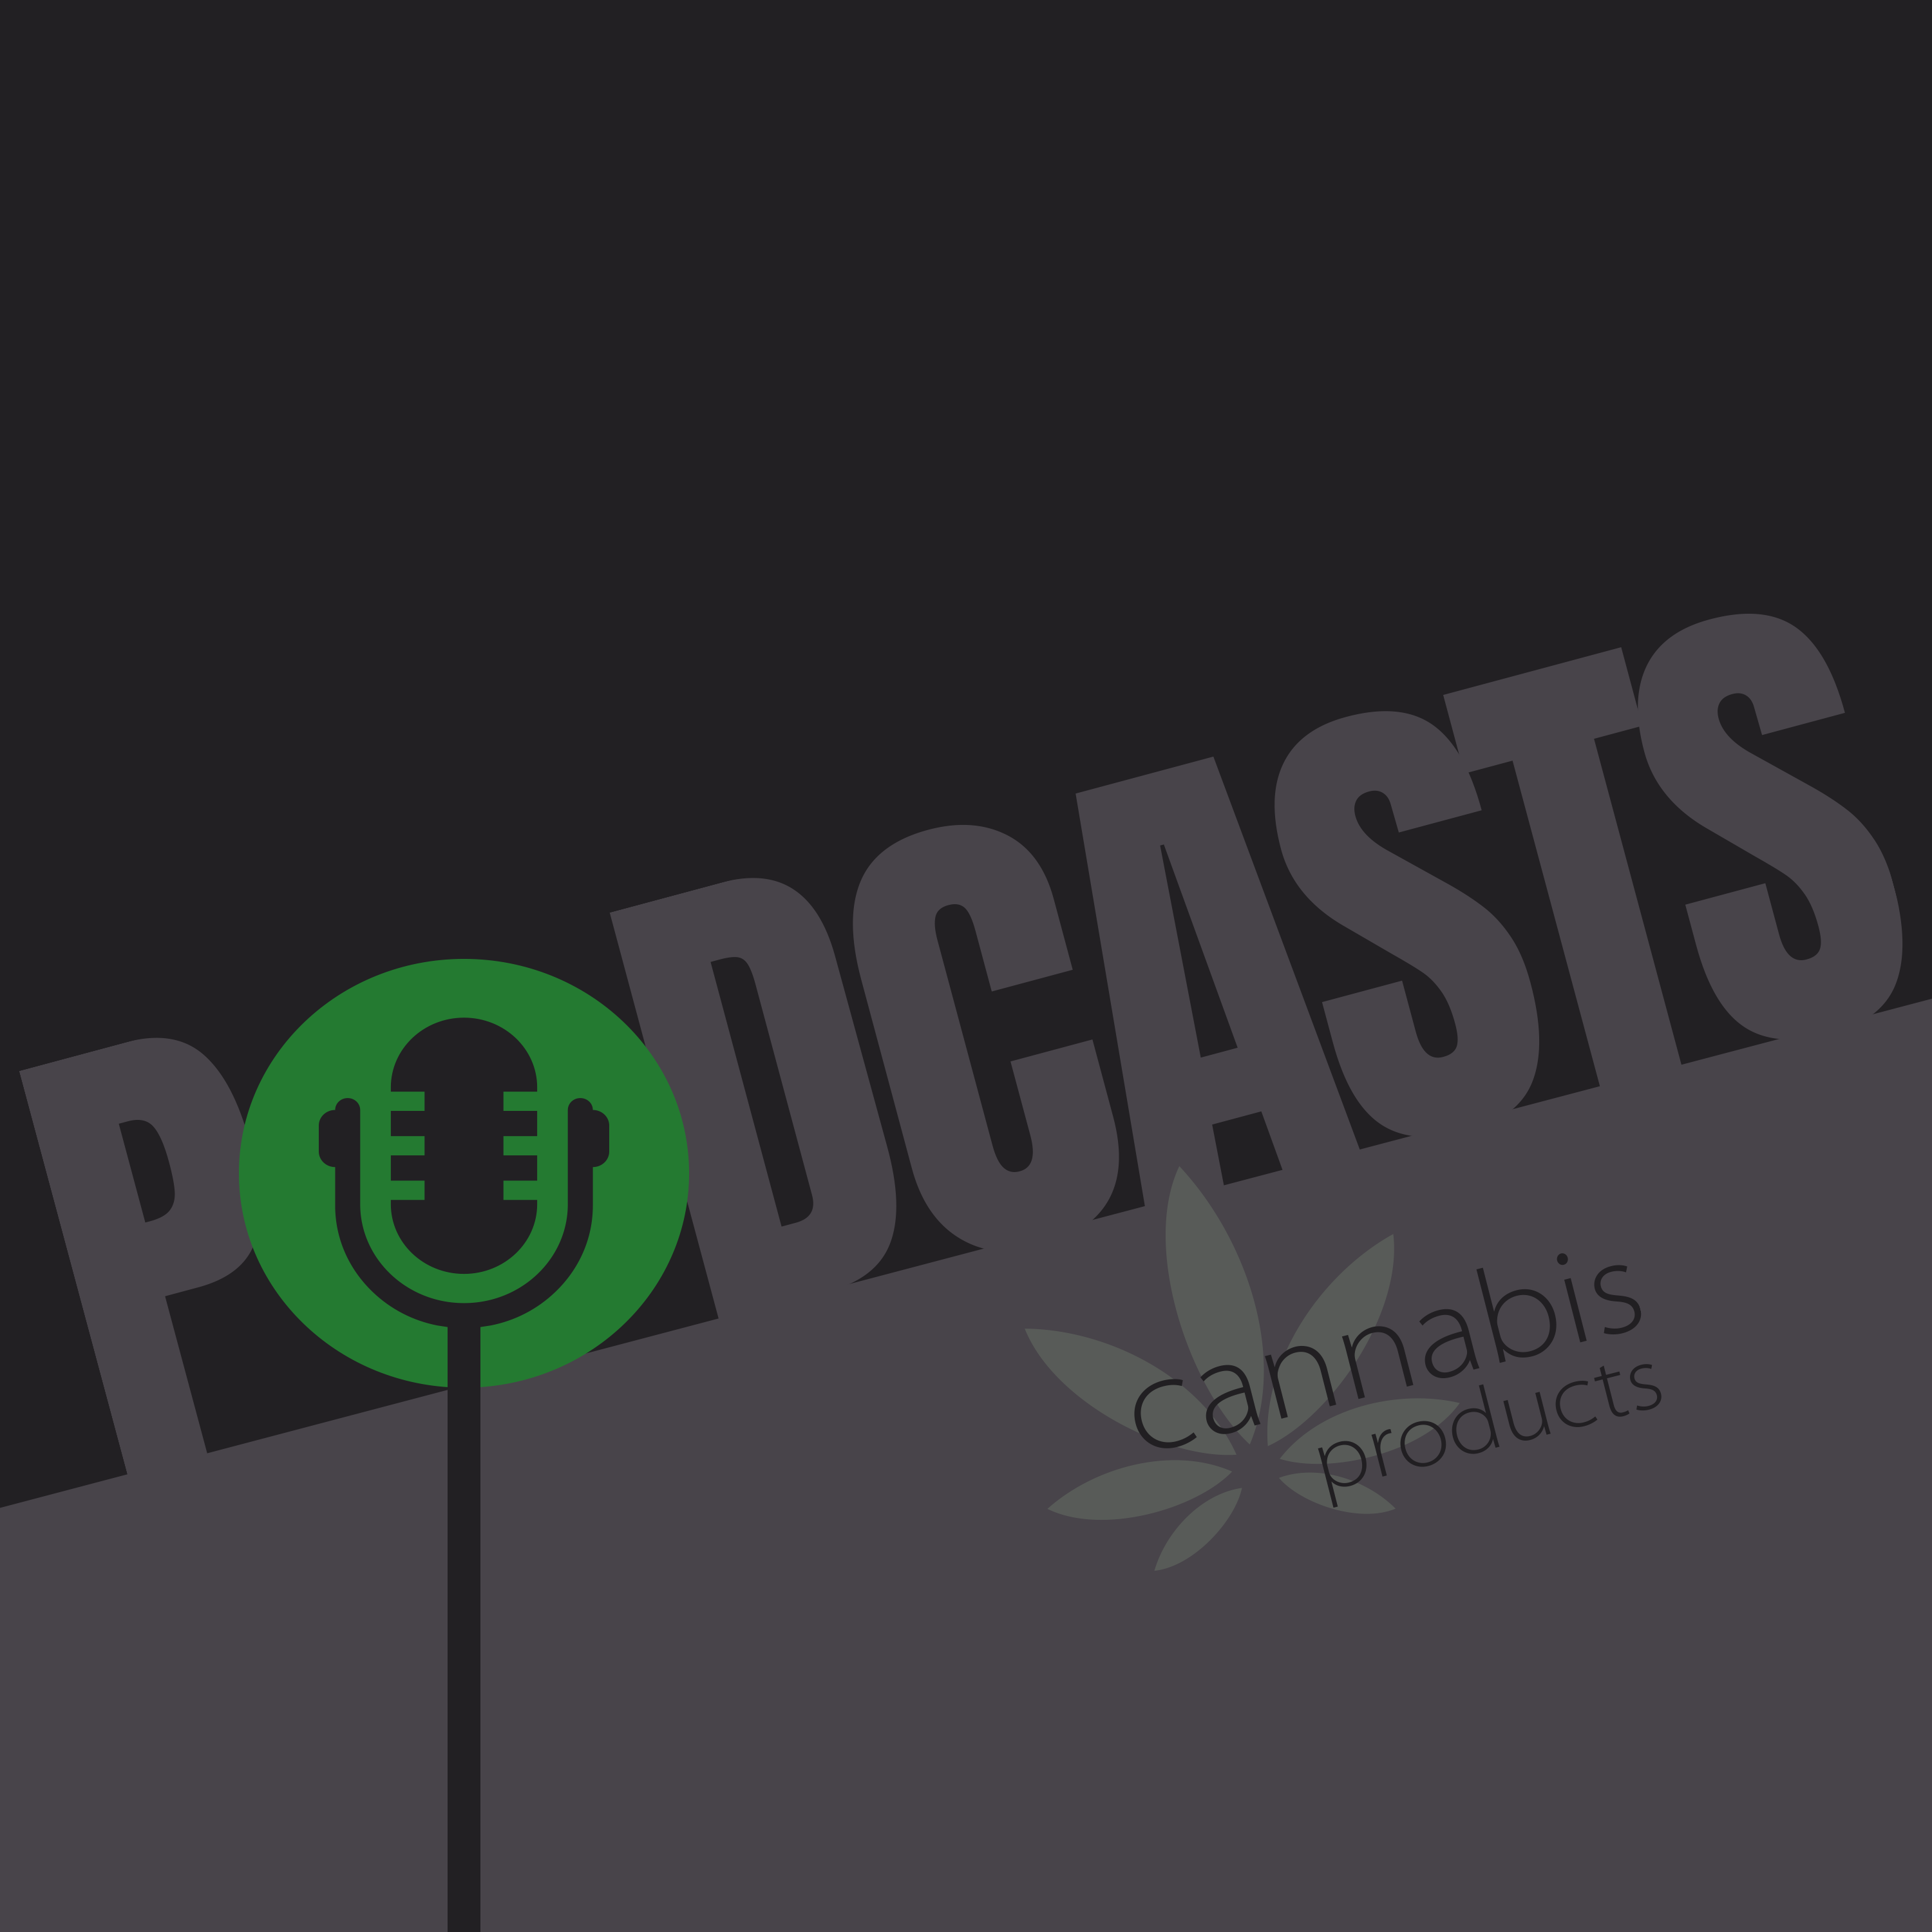 Cannabis Products Podcasts